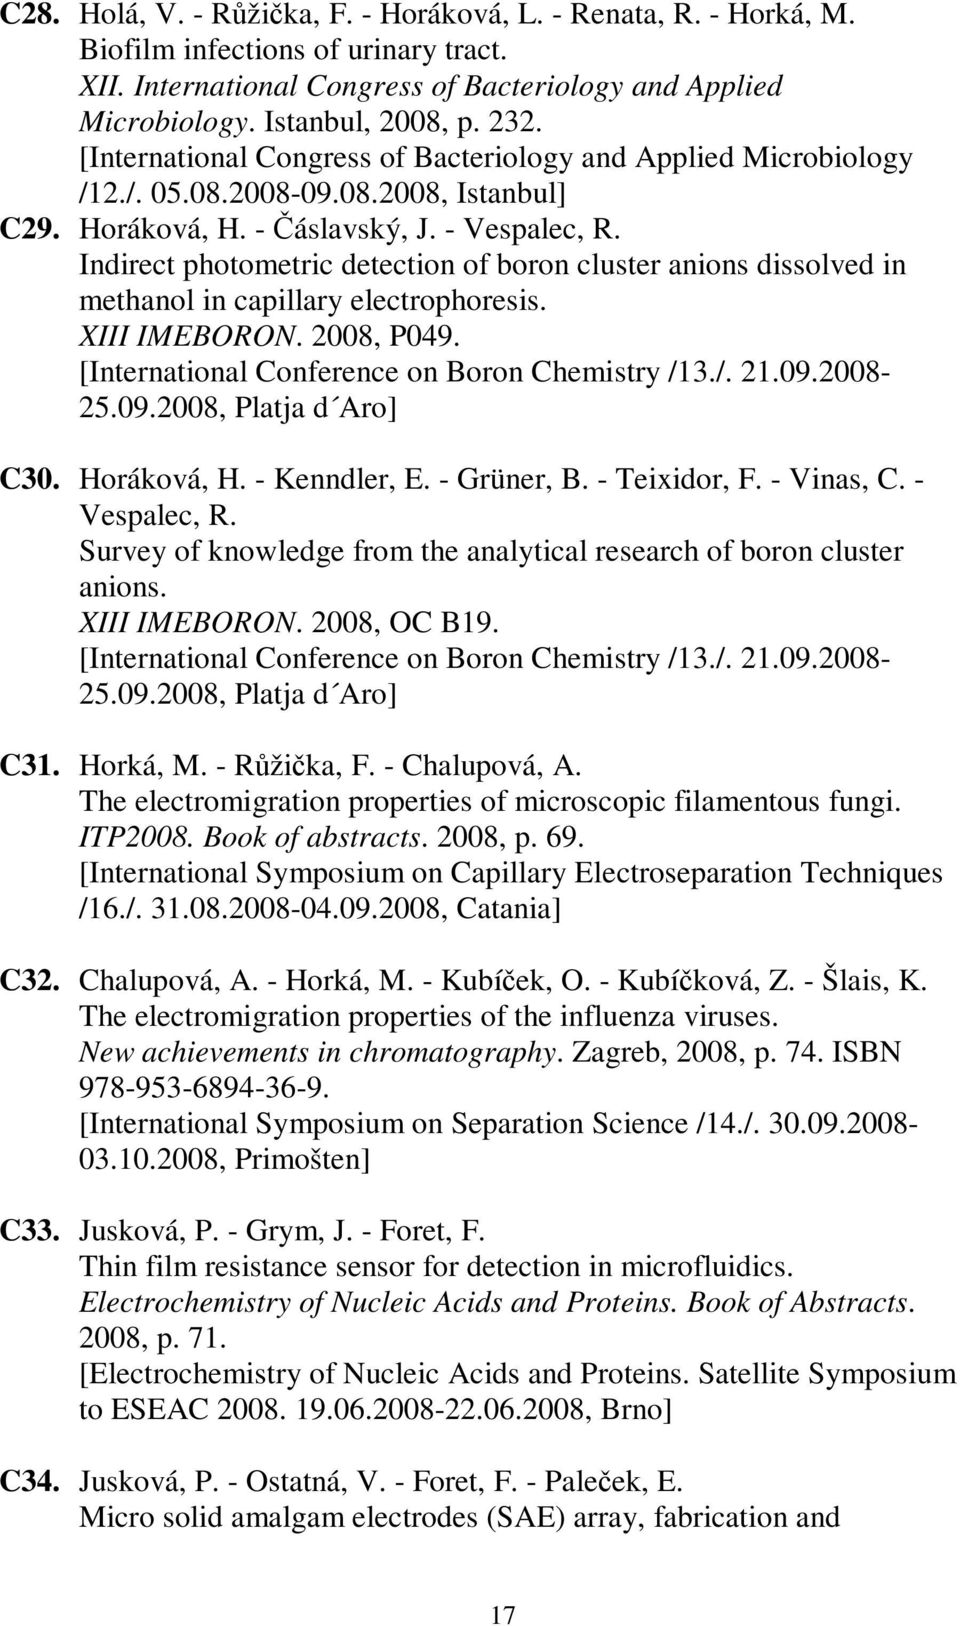 Indirect photometric detection of boron cluster anions dissolved in methanol in capillary electrophoresis. XIII IMEBORON. 2008, P049. [International Conference on Boron Chemistry /13./. 21.09.2008-25.